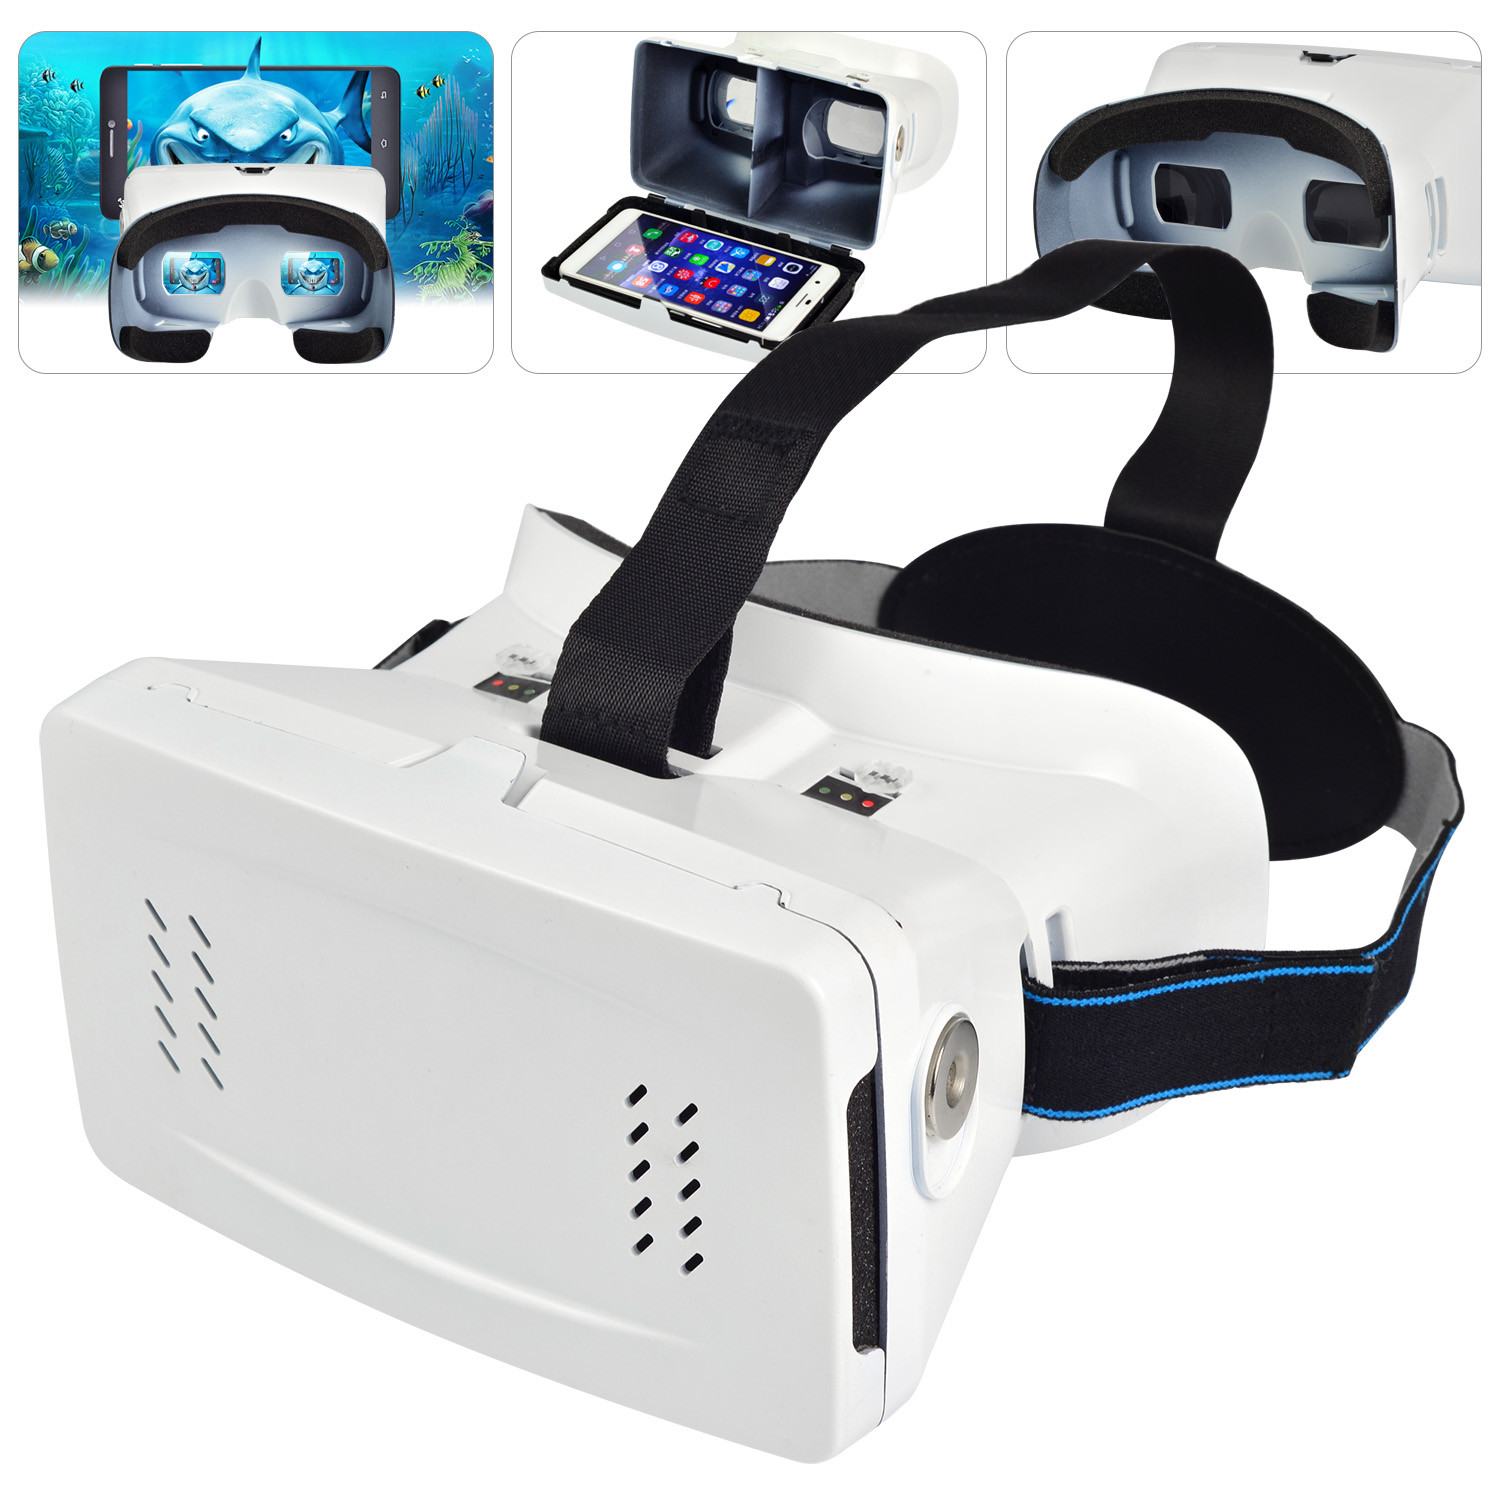 MENGS® 3D RIEM II virtual reality Glasses with ABS material and magnetic switch compatible for smart phones 3.5~6.0 inches screen